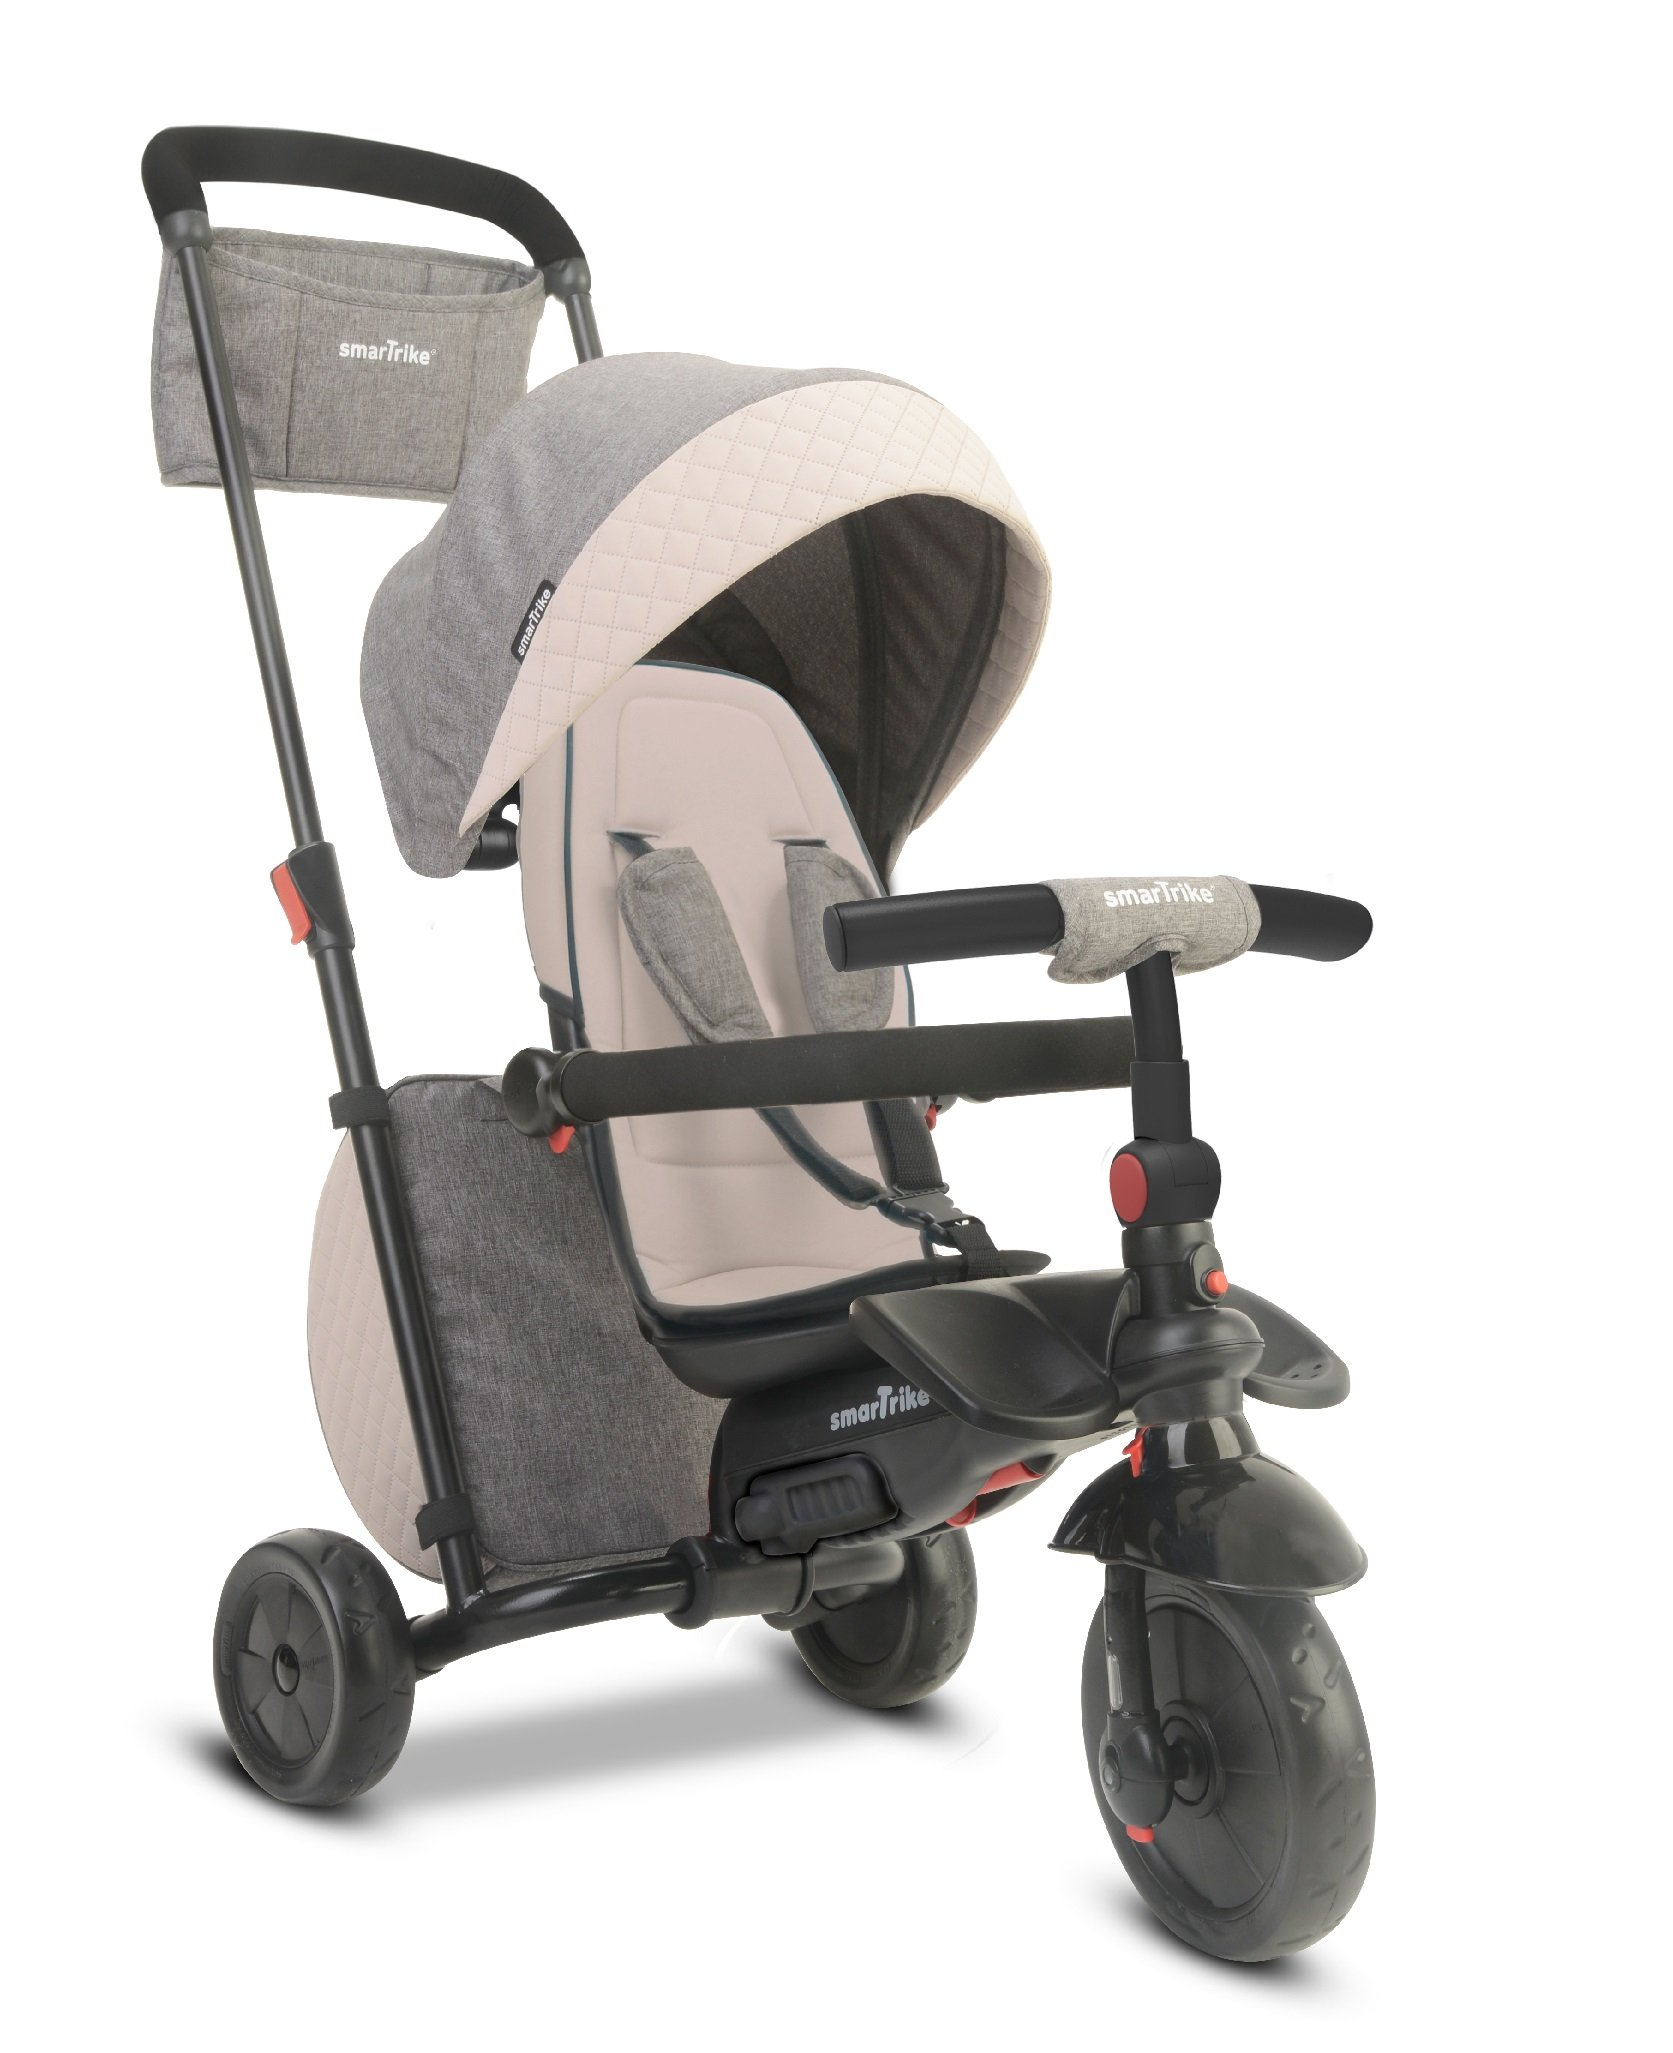 smarTrike Smartfold 600 Baby Tricycle, Grey